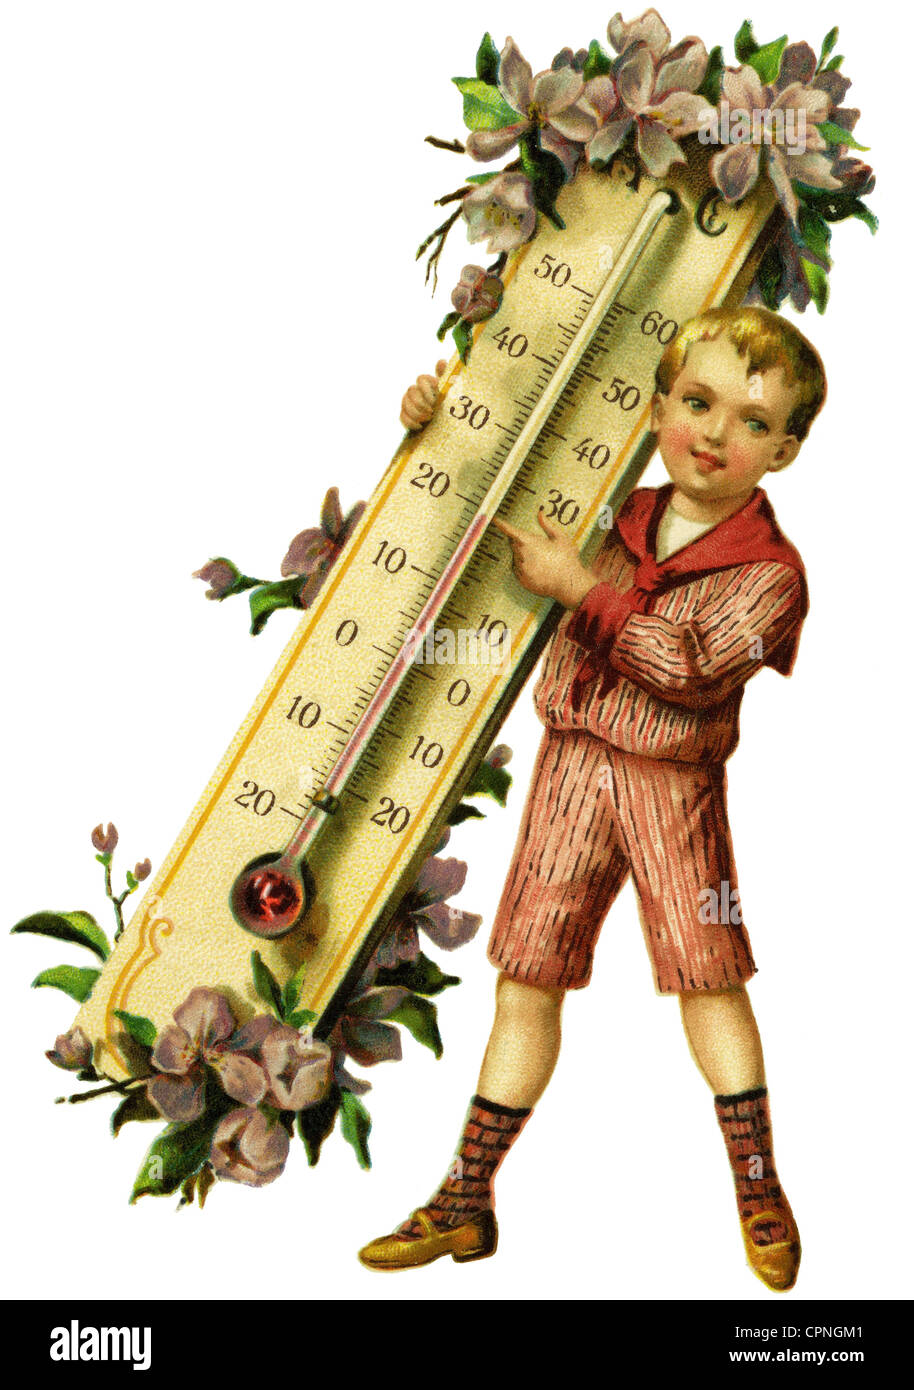 kitsch / souvenir, boy with thermometer, Germany, circa 1914, Additional-Rights-Clearences-NA - Stock Image